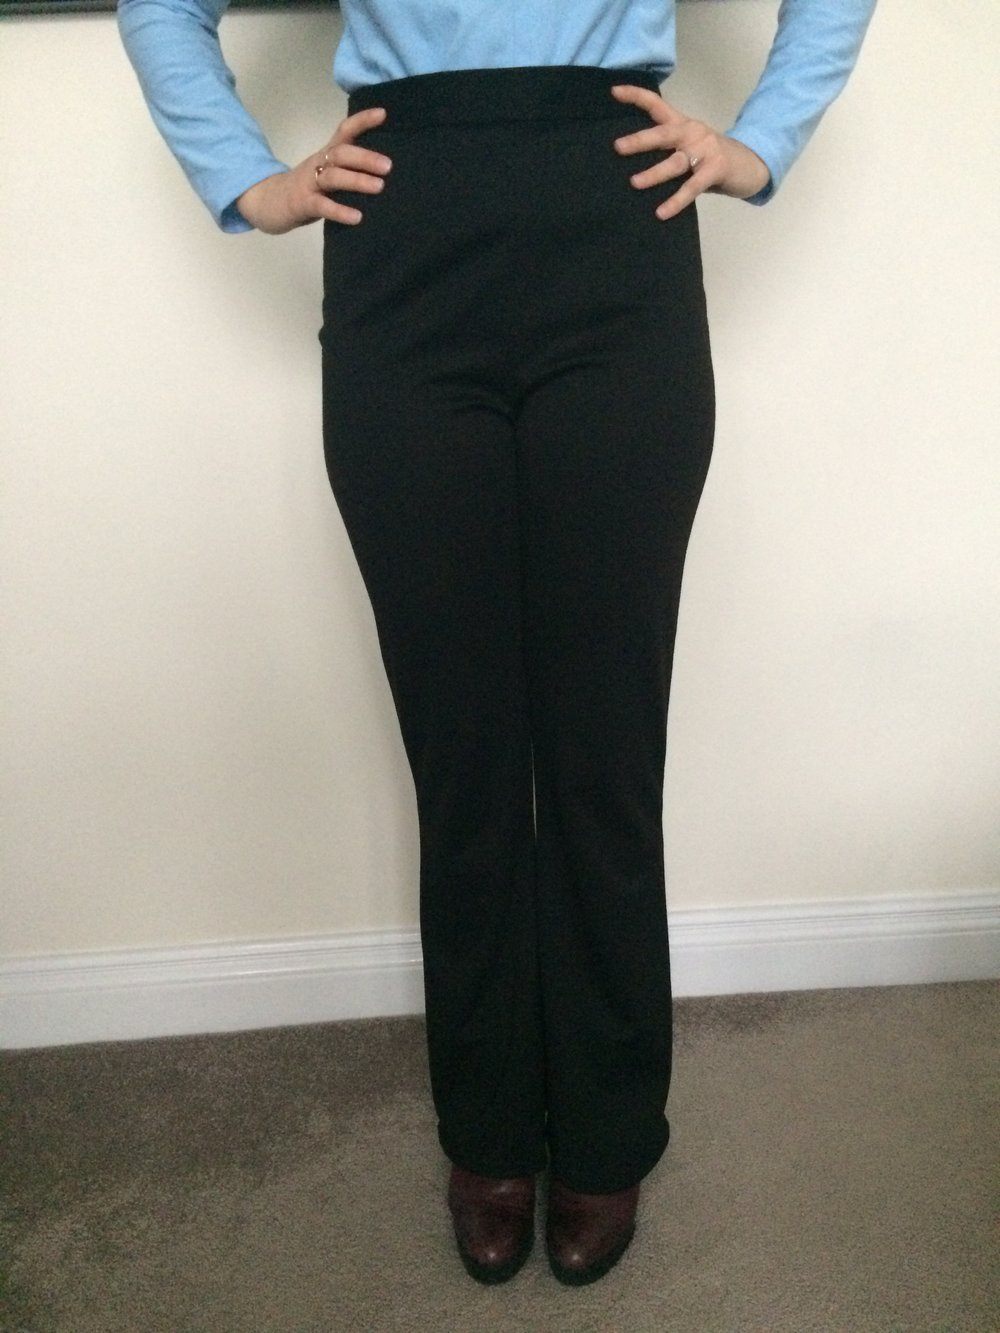 Mimi G for Simplicity 1283 trousers